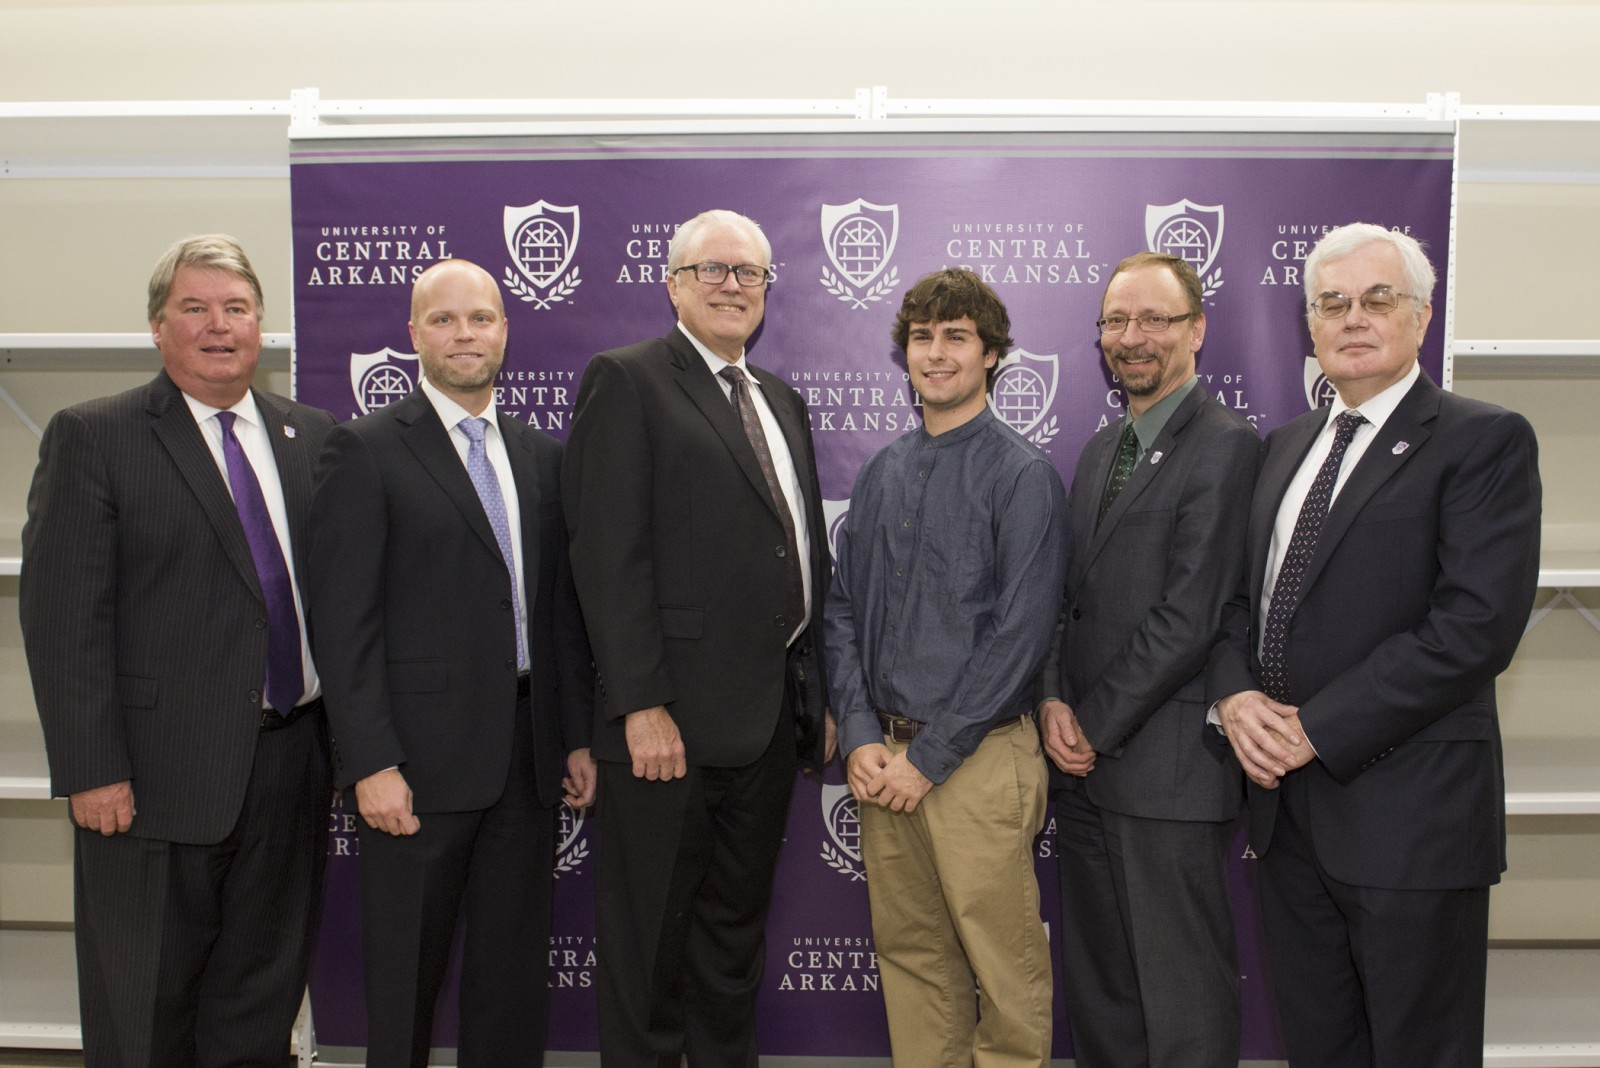 UCA President Tom Courtway; Ryan Ainsworth, Southwestern Energy Company area general manager of Operations-Fayetteville Shale; George Sheffer, Southwestern Energy Company vice president of Operations-Fayetteville Shale; Christopher Robinson, first Southwestern Energy/Steven L. Mueller Research Fellow; Dr. Steven Runge, executive vice president and provost; and Dr. Stephen Addison, dean of the College of Natural Sciences and Mathematics